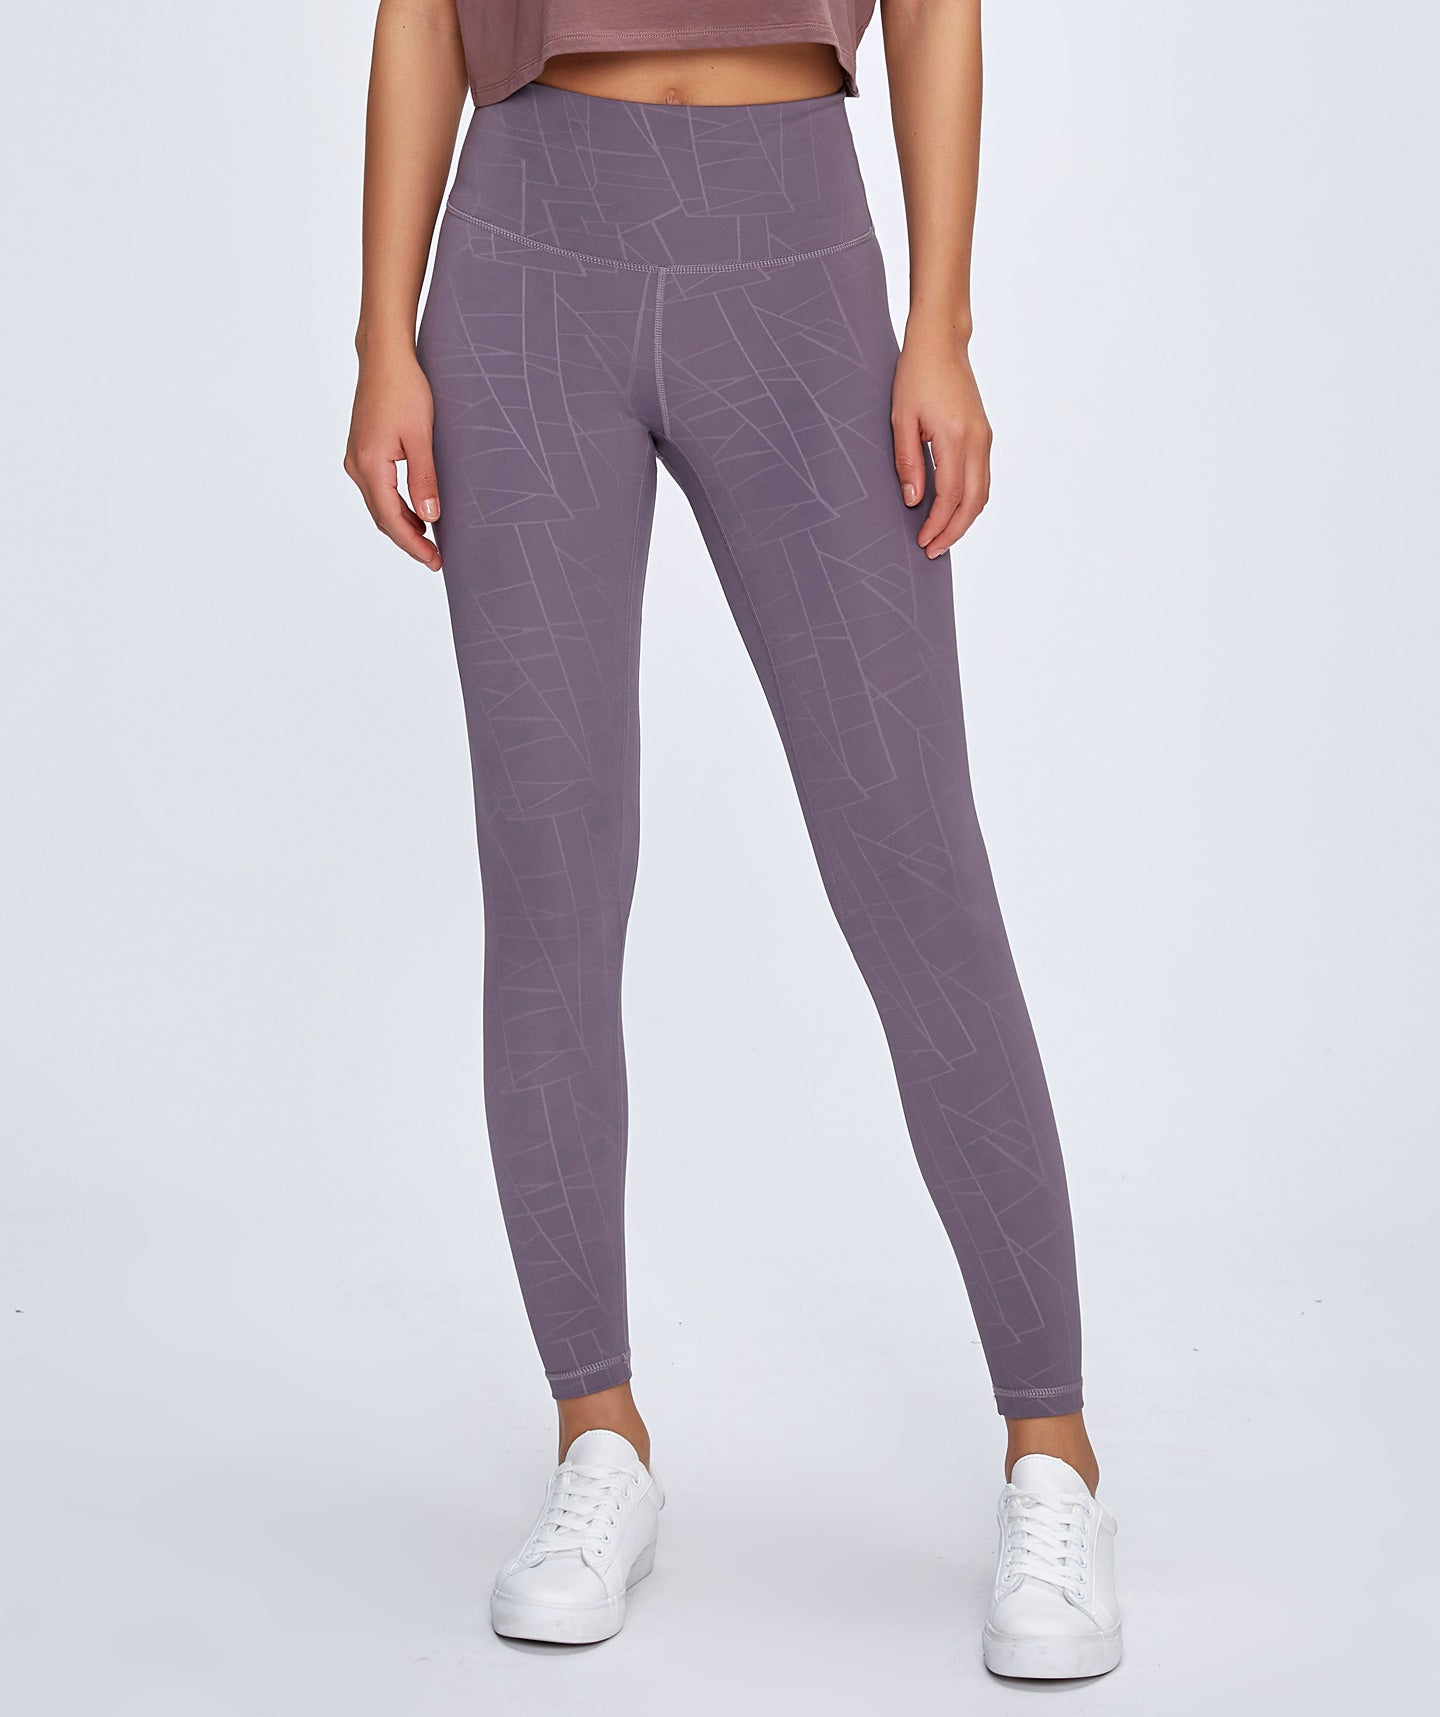 Energy Lavender Leggings